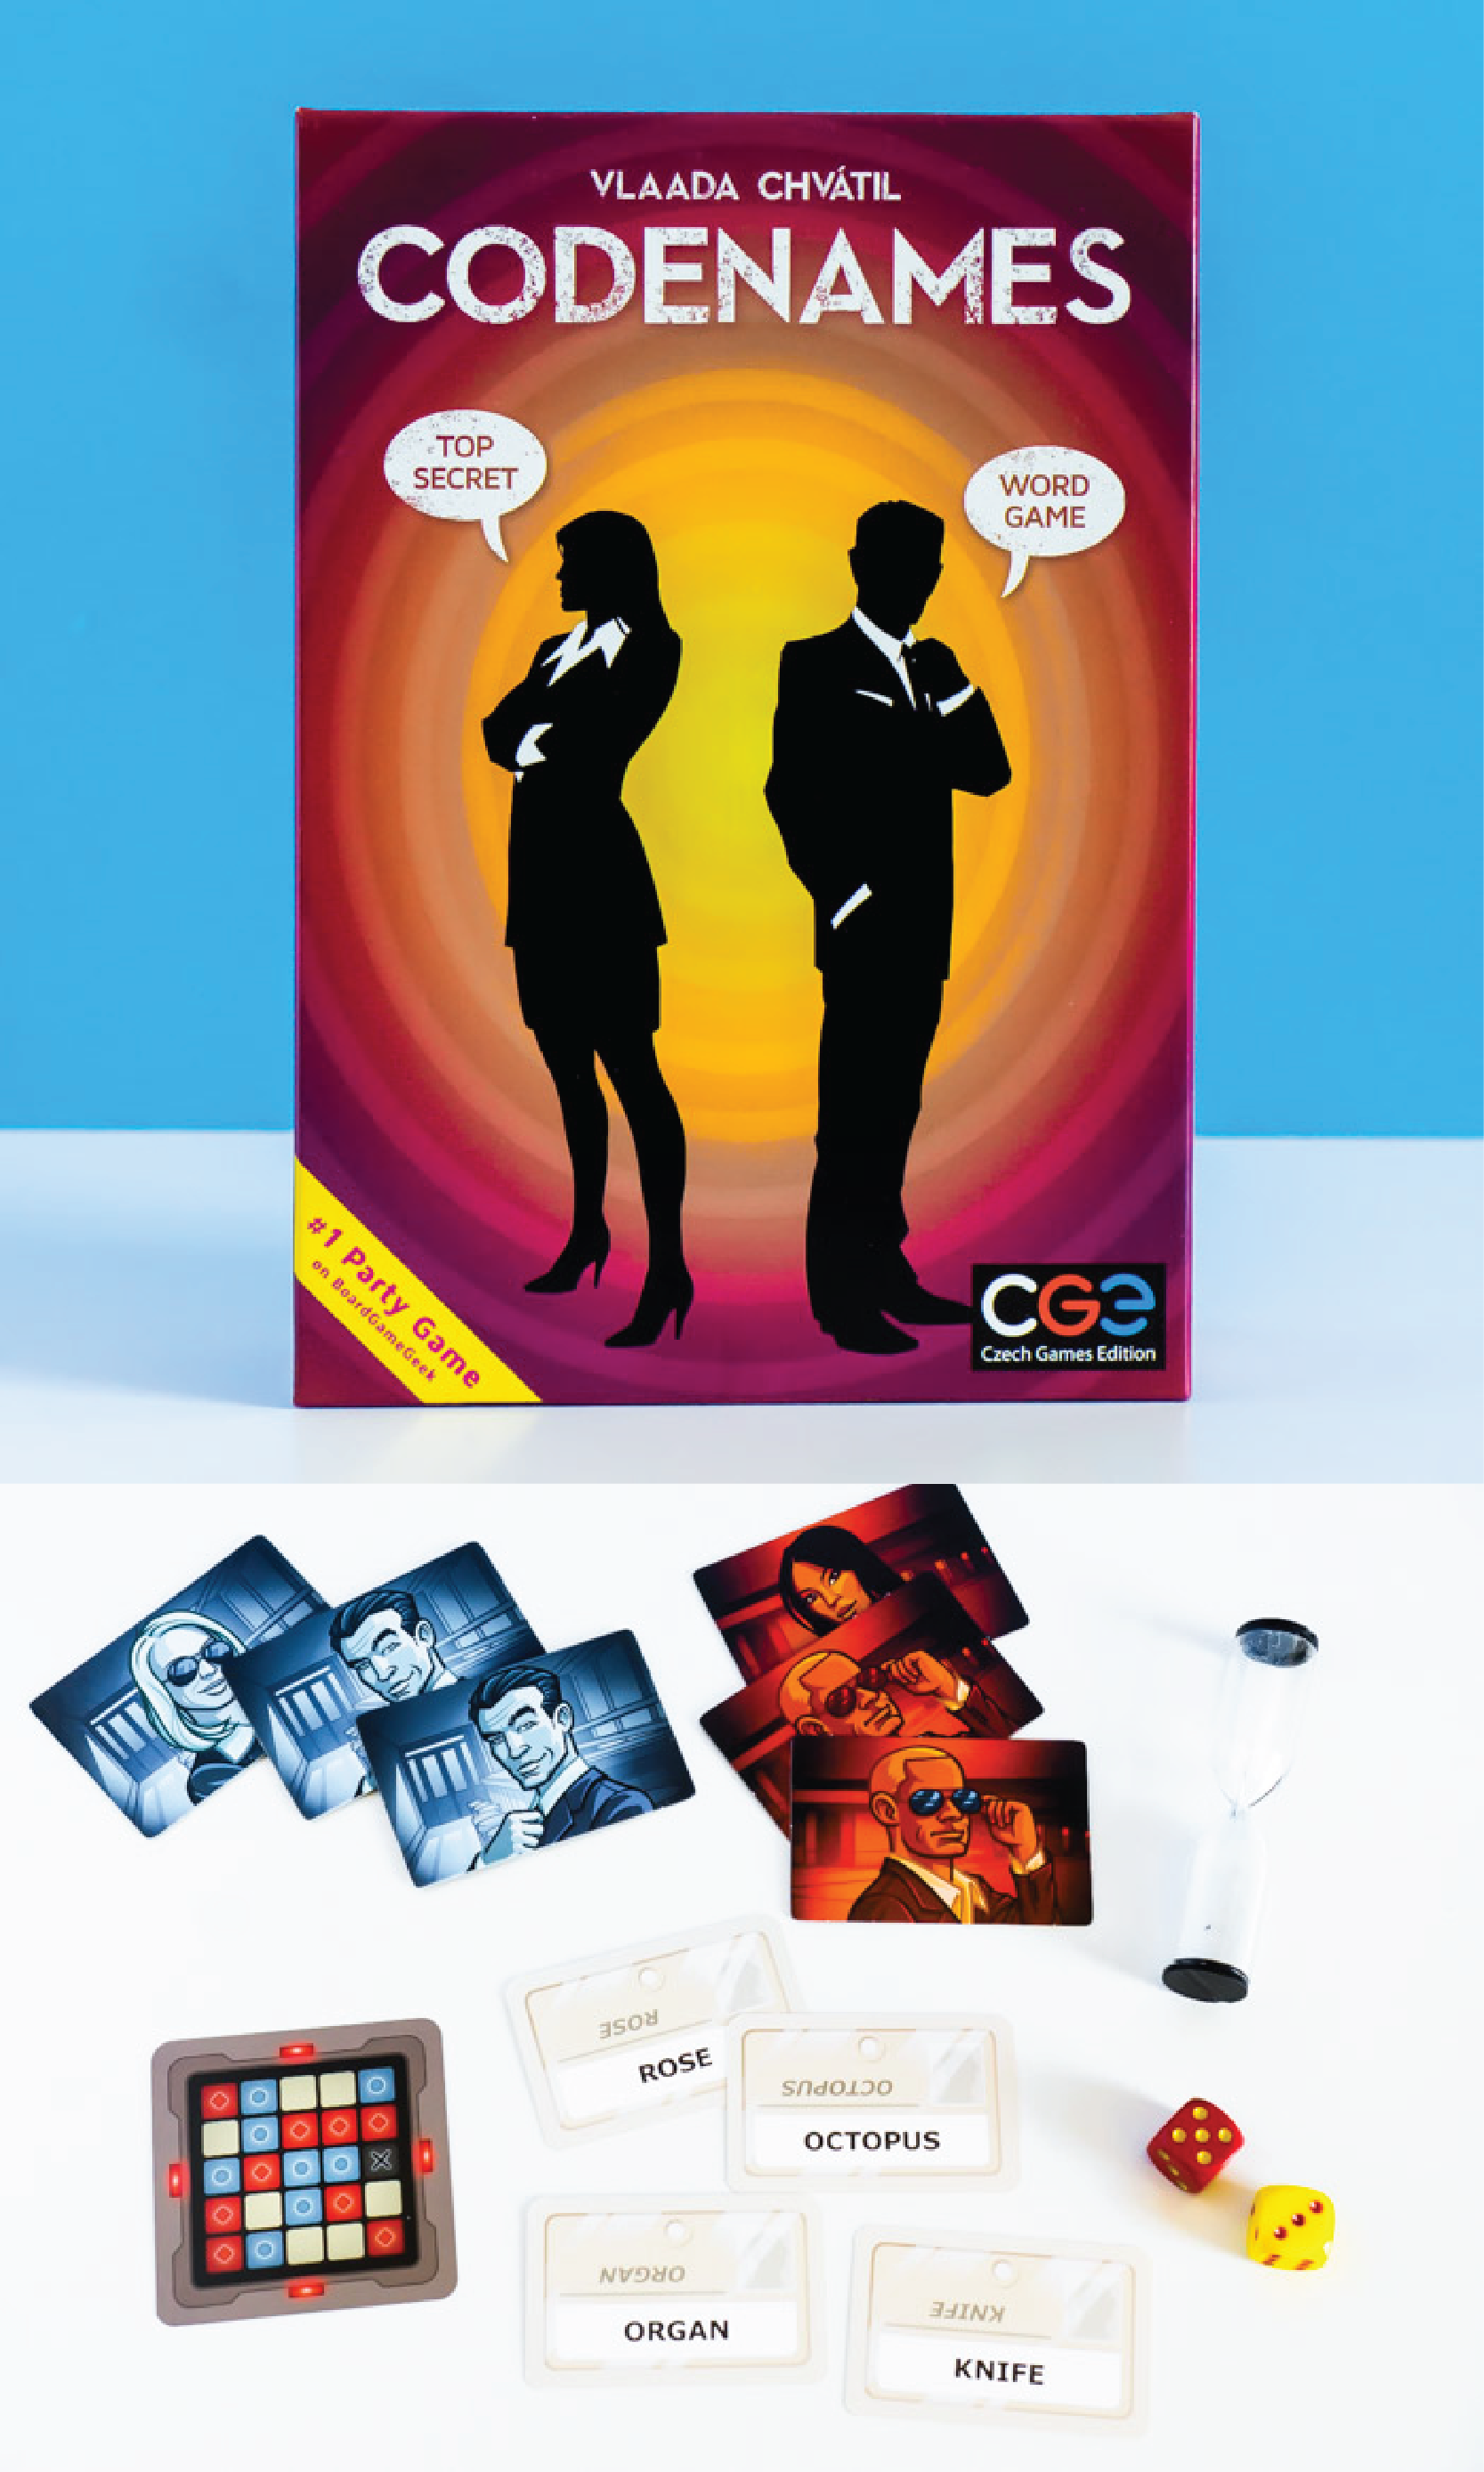 Codenames is one of the most popular mystery adult board games